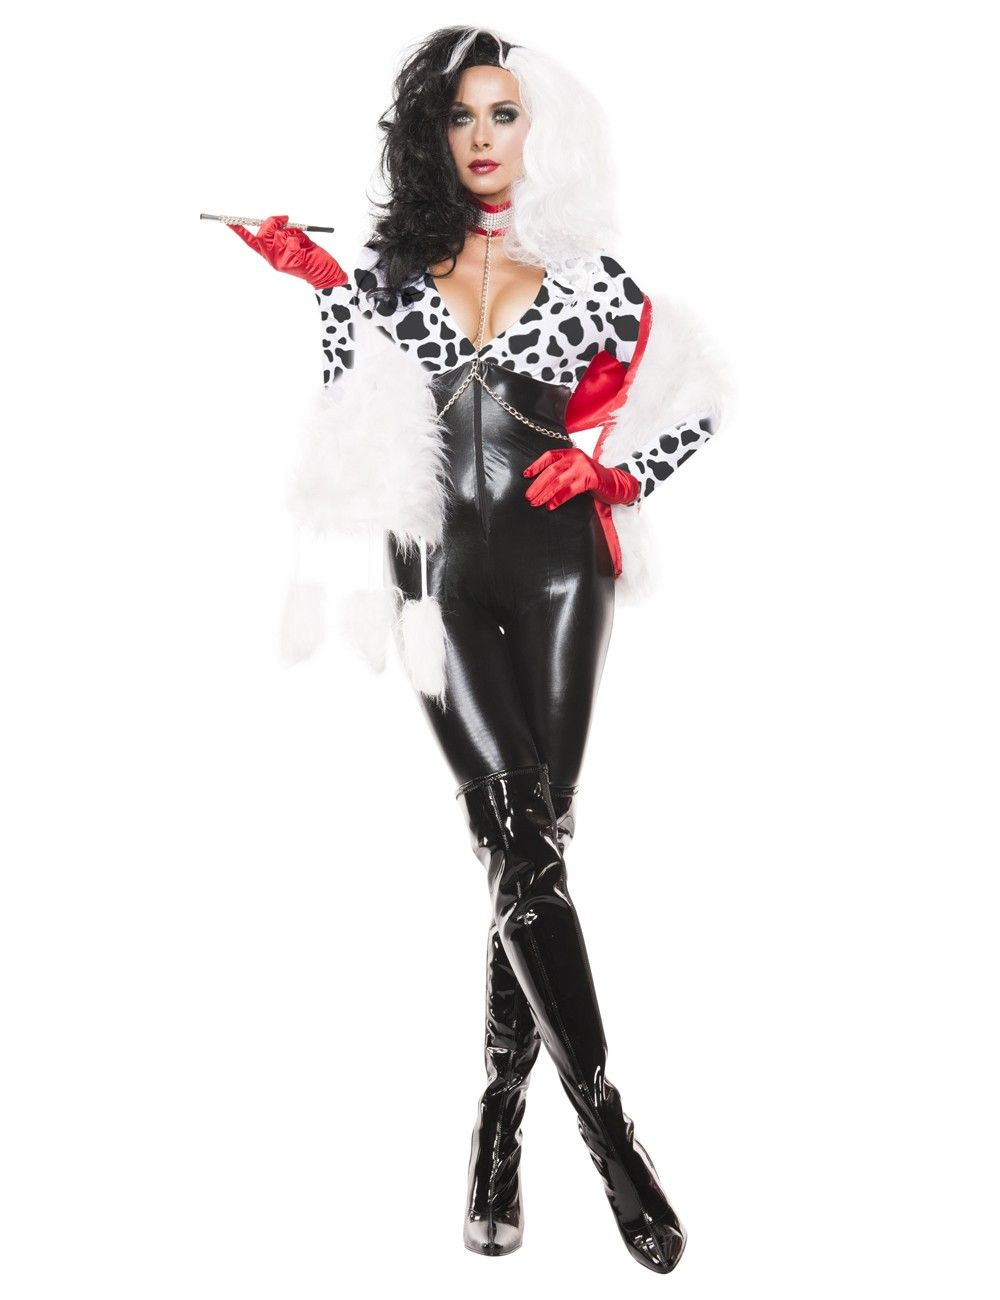 Puppy de vil costume you will be the queen of dalmatians in this puppy de vil costume you will be the queen of dalmatians in this sexy cruella solutioingenieria Gallery